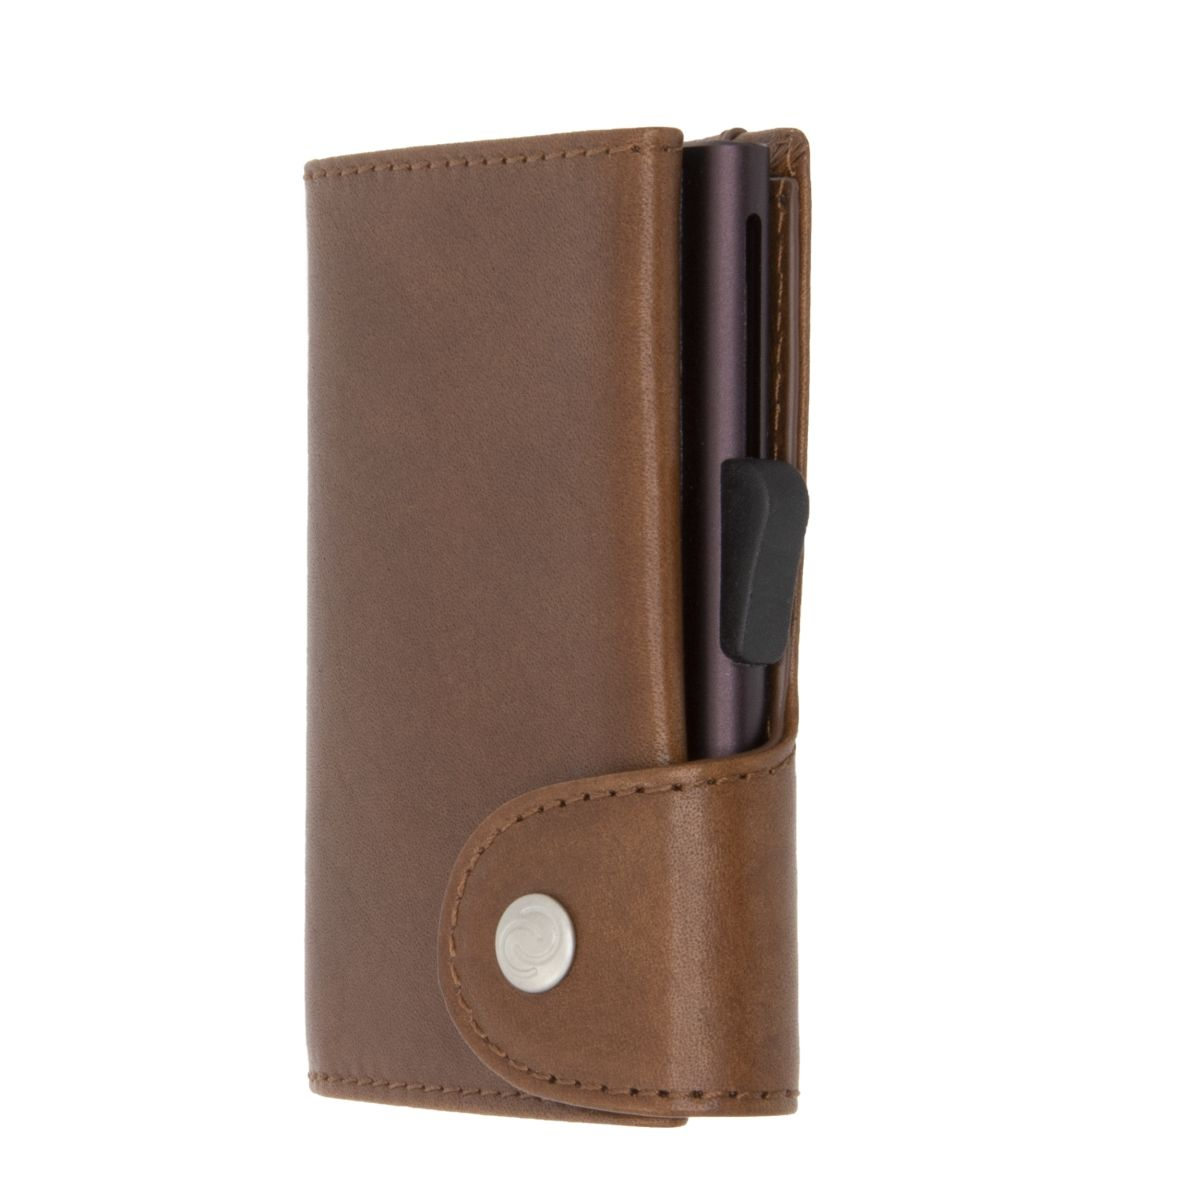 C-Secure Aluminum Card Holder with Genuine Leather - Brown